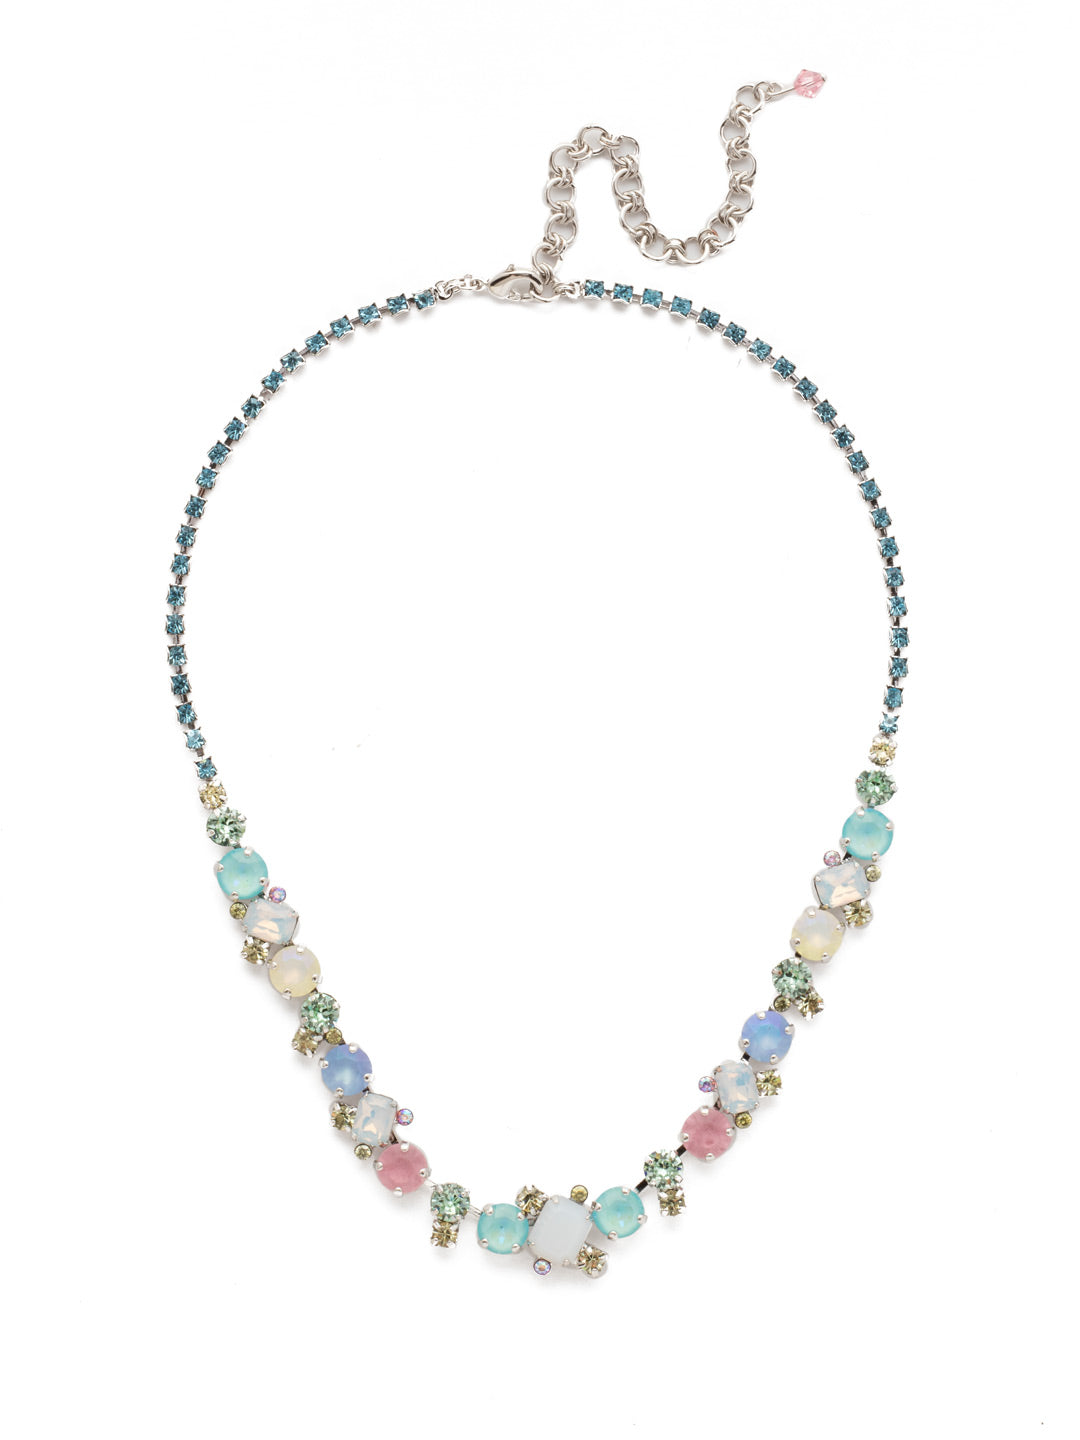 Sophisticated Tennis Necklace - NDK17RHSSU